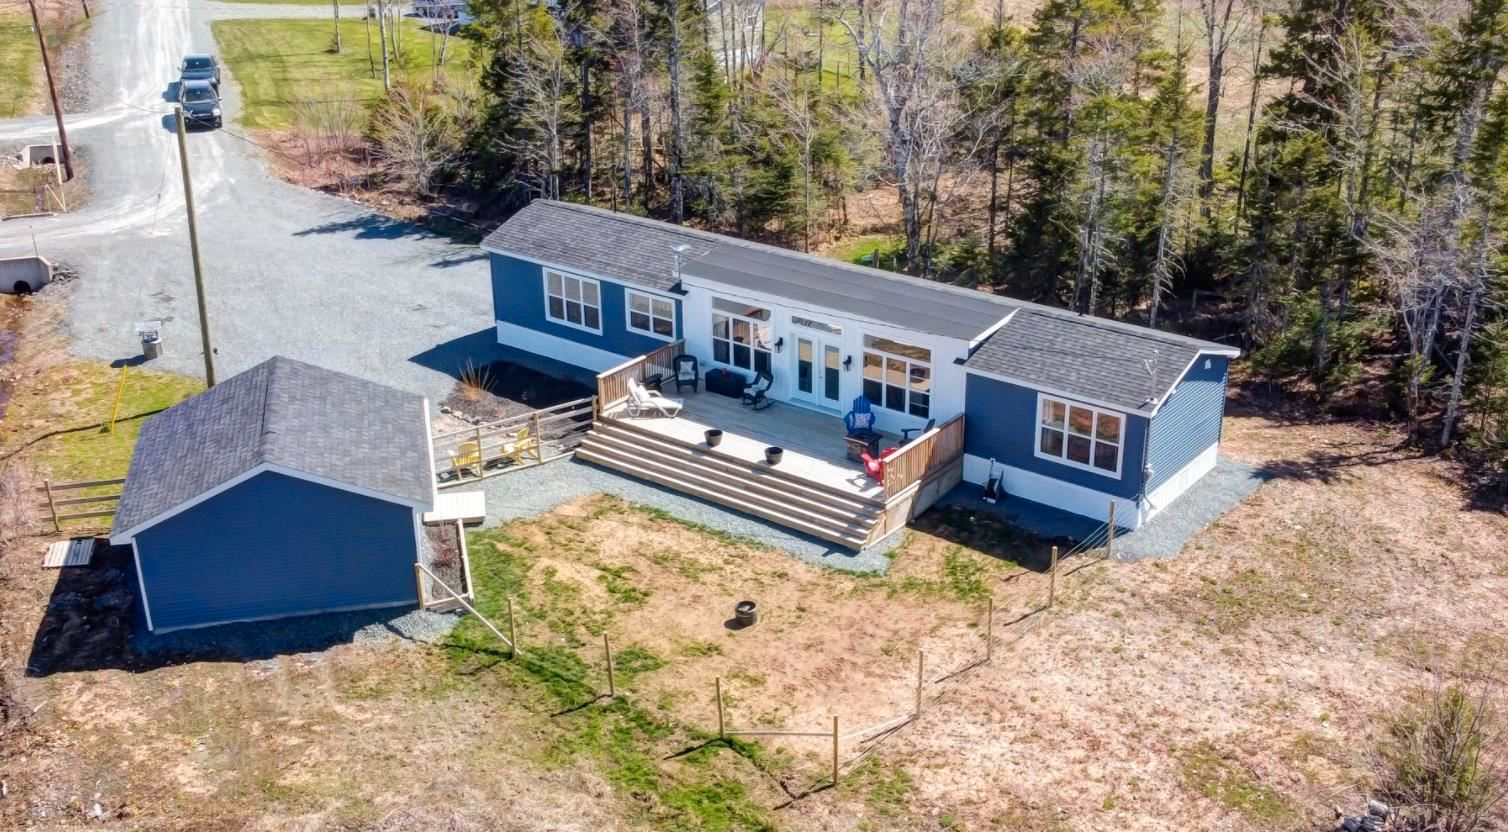 Main Photo: 64 Runway Court in Devon: 30-Waverley, Fall River, Oakfield Residential for sale (Halifax-Dartmouth)  : MLS®# 202111214